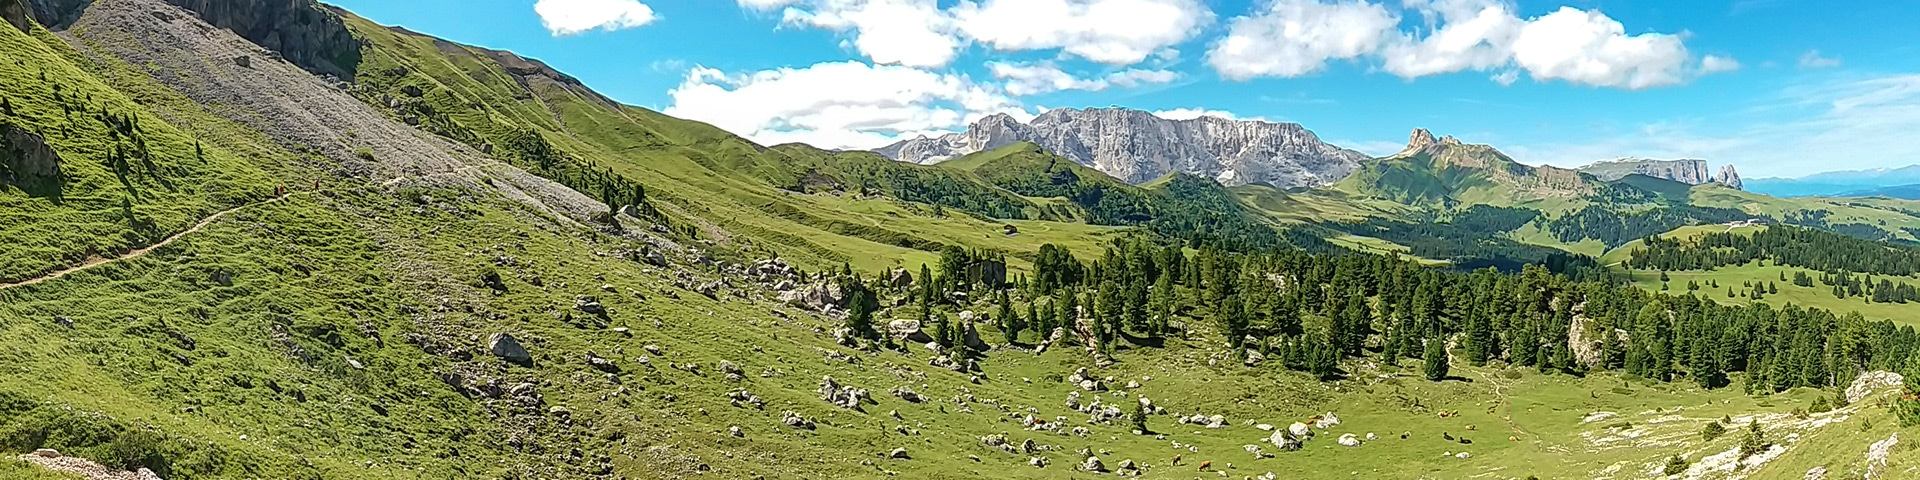 Panoramic views from the Sasso Piatto and Sassolungo hike in Dolomites, Italy